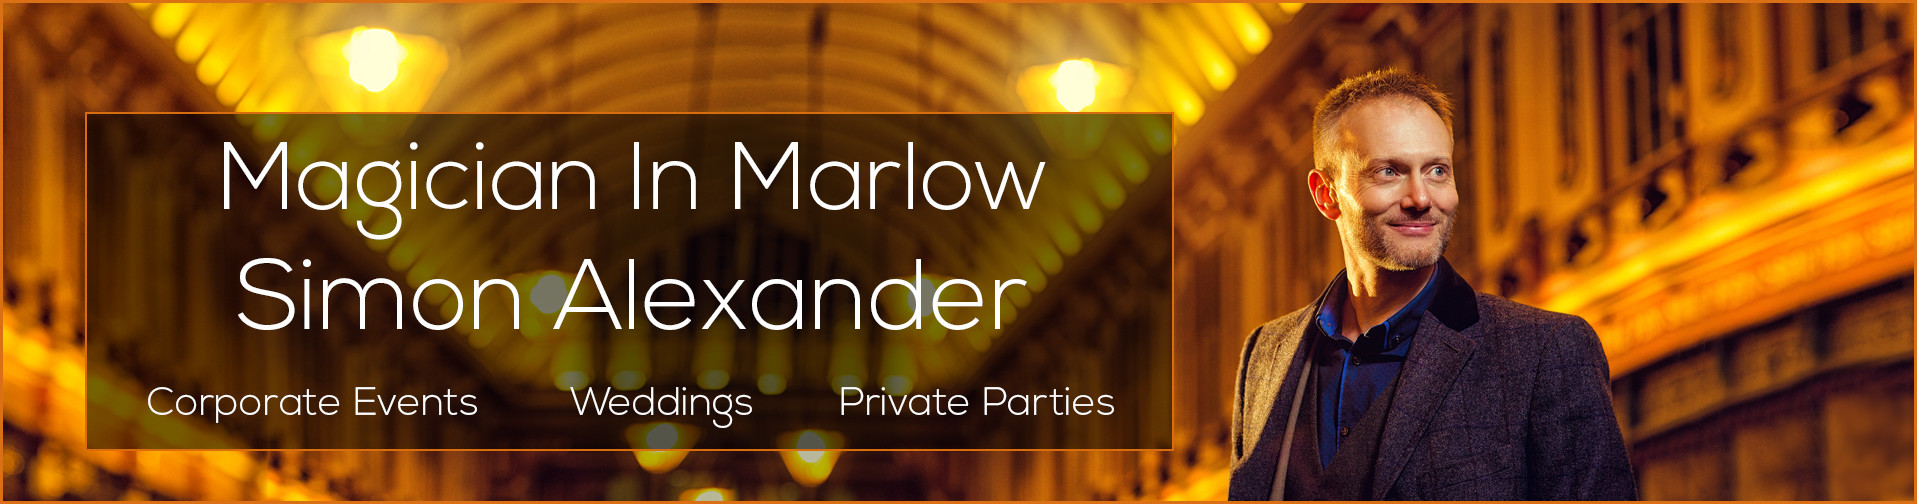 Magician In Marlow Banner